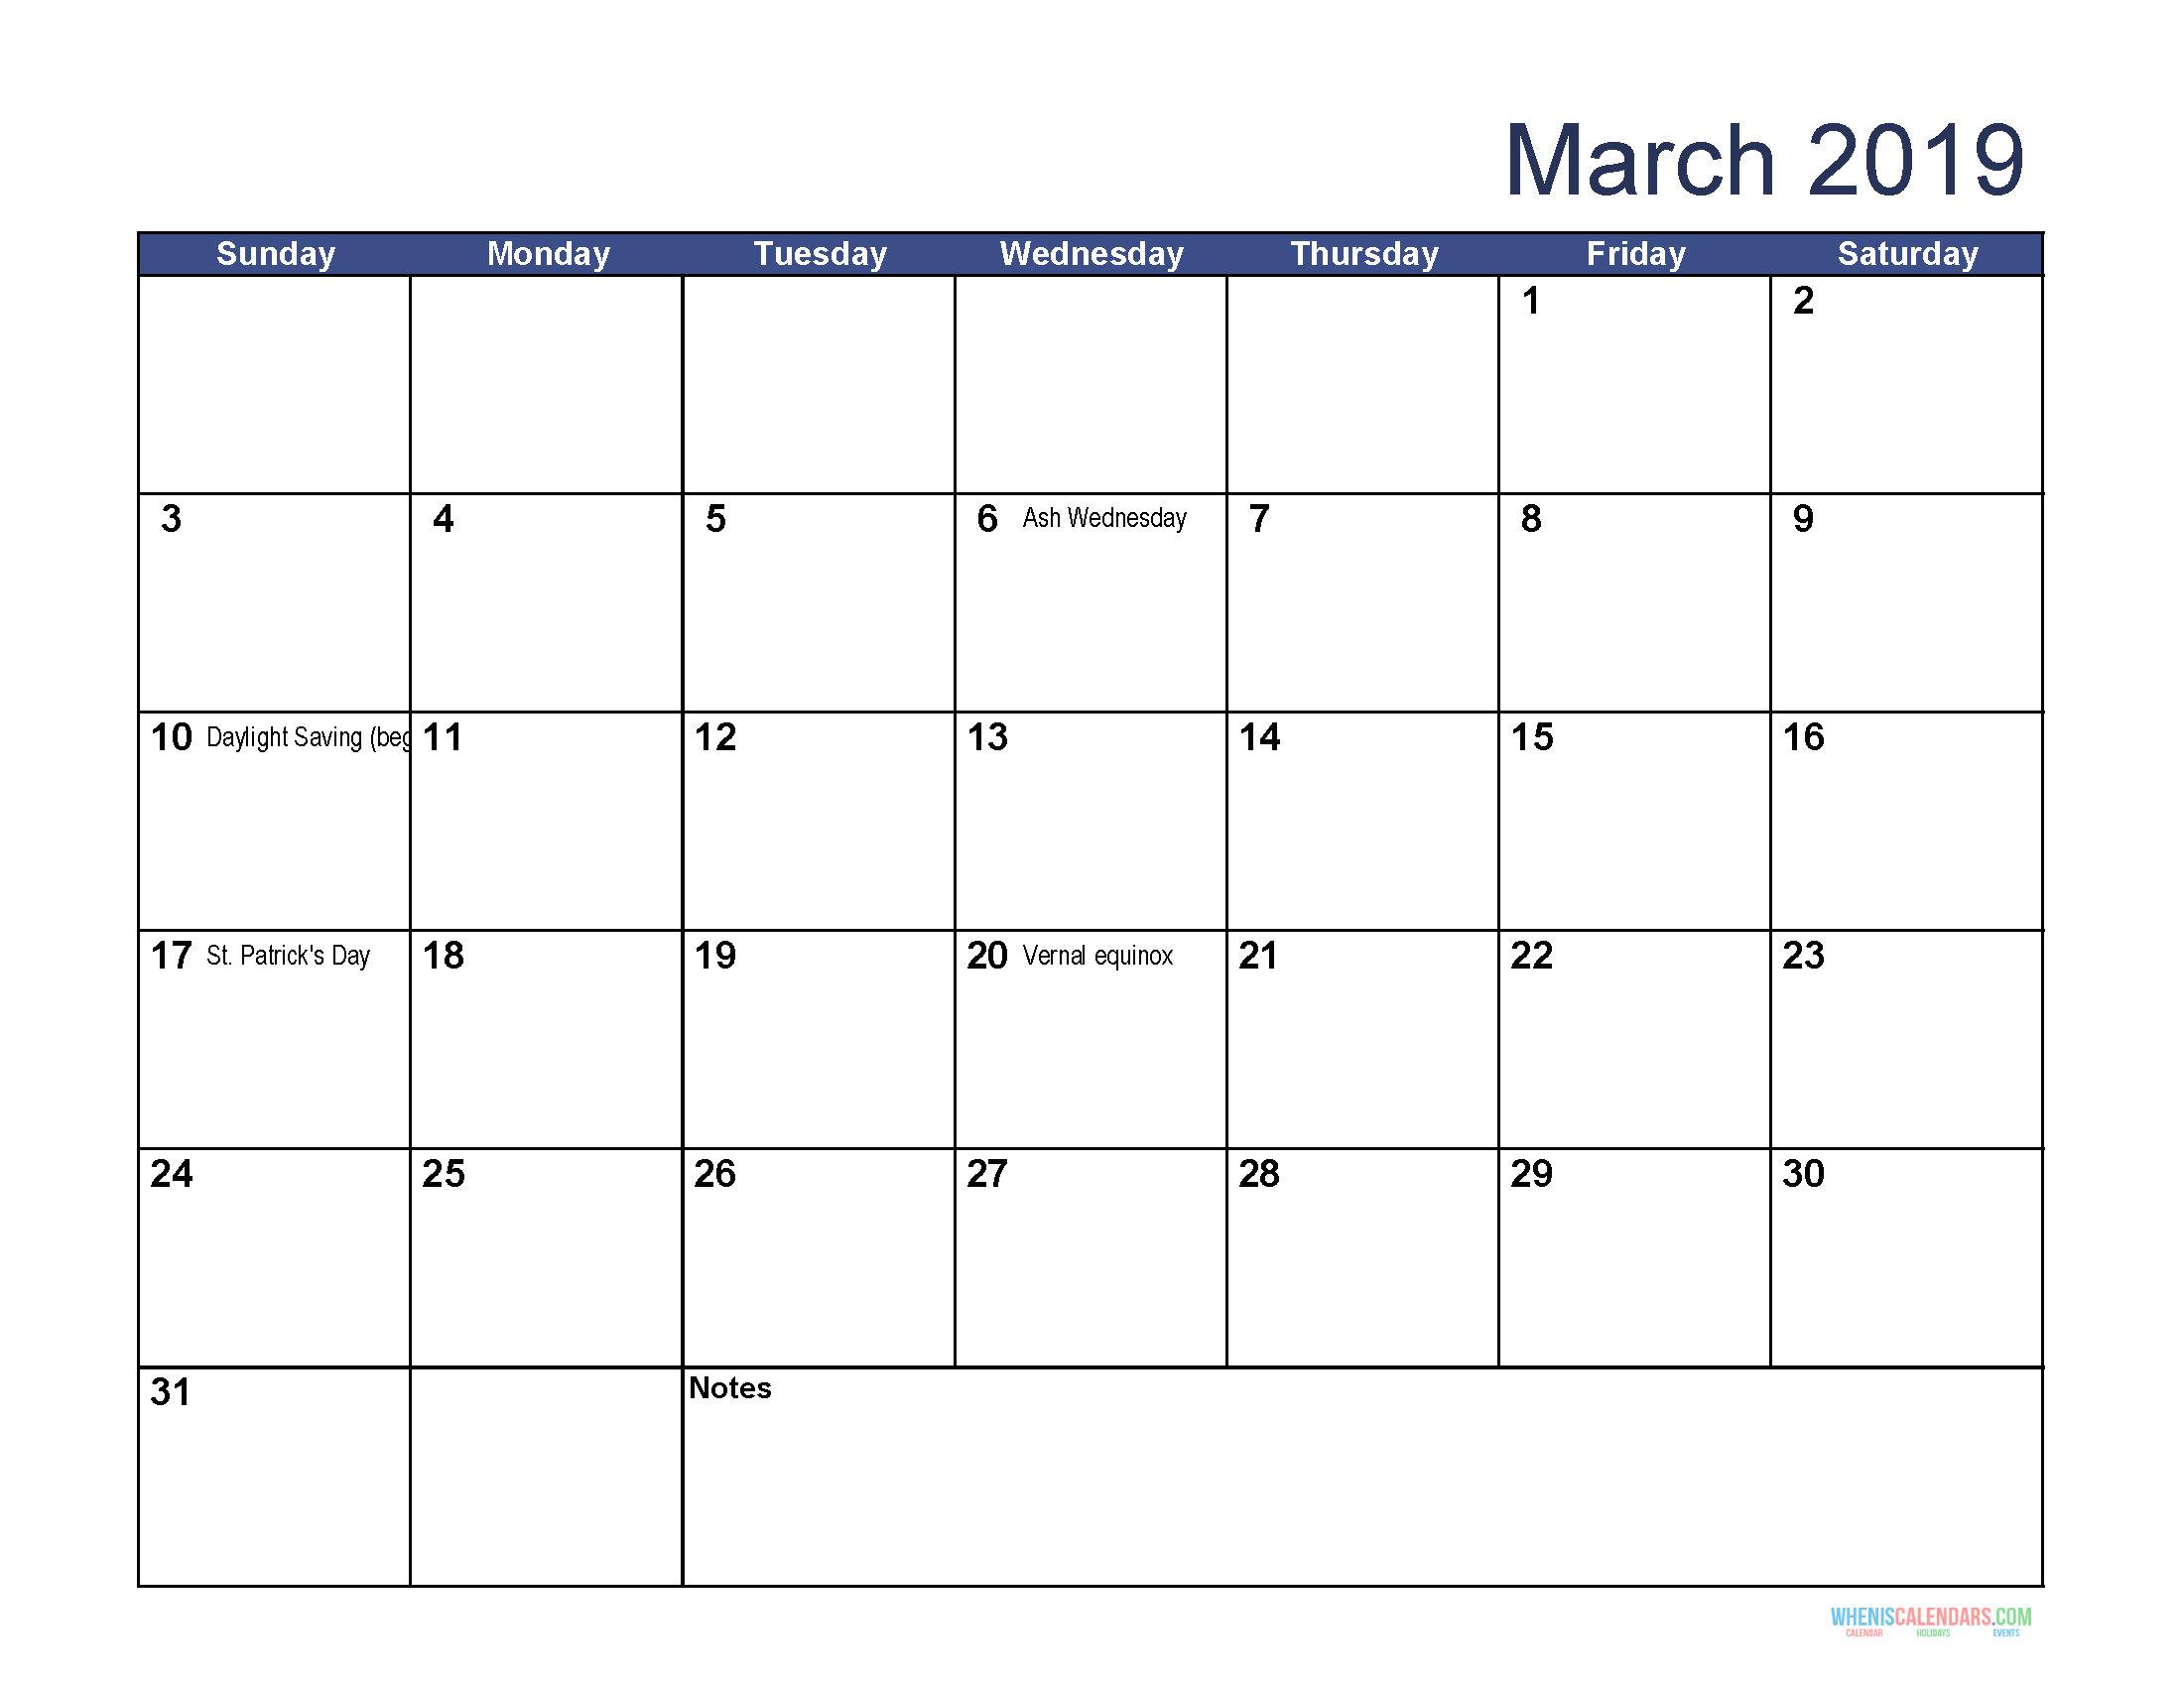 photo regarding Printable Word Calendar called Printable Calendar for March 2019 Term March 2019 Calendar